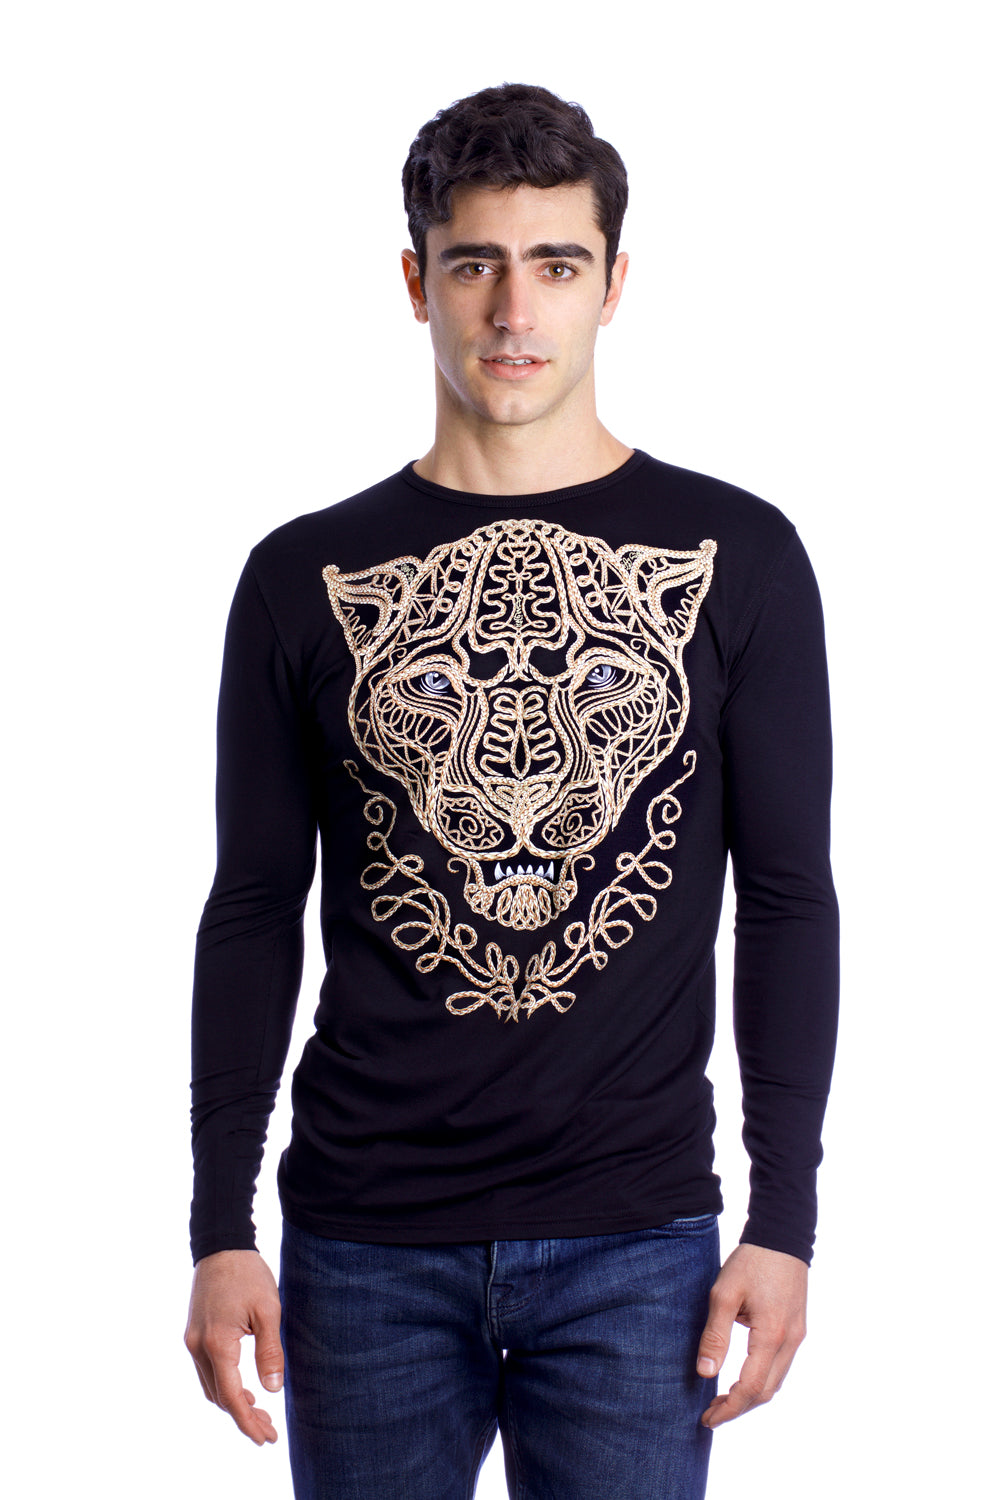 JAGUAR REATA - T-Shirt Men - ¡Ay Güey! USA